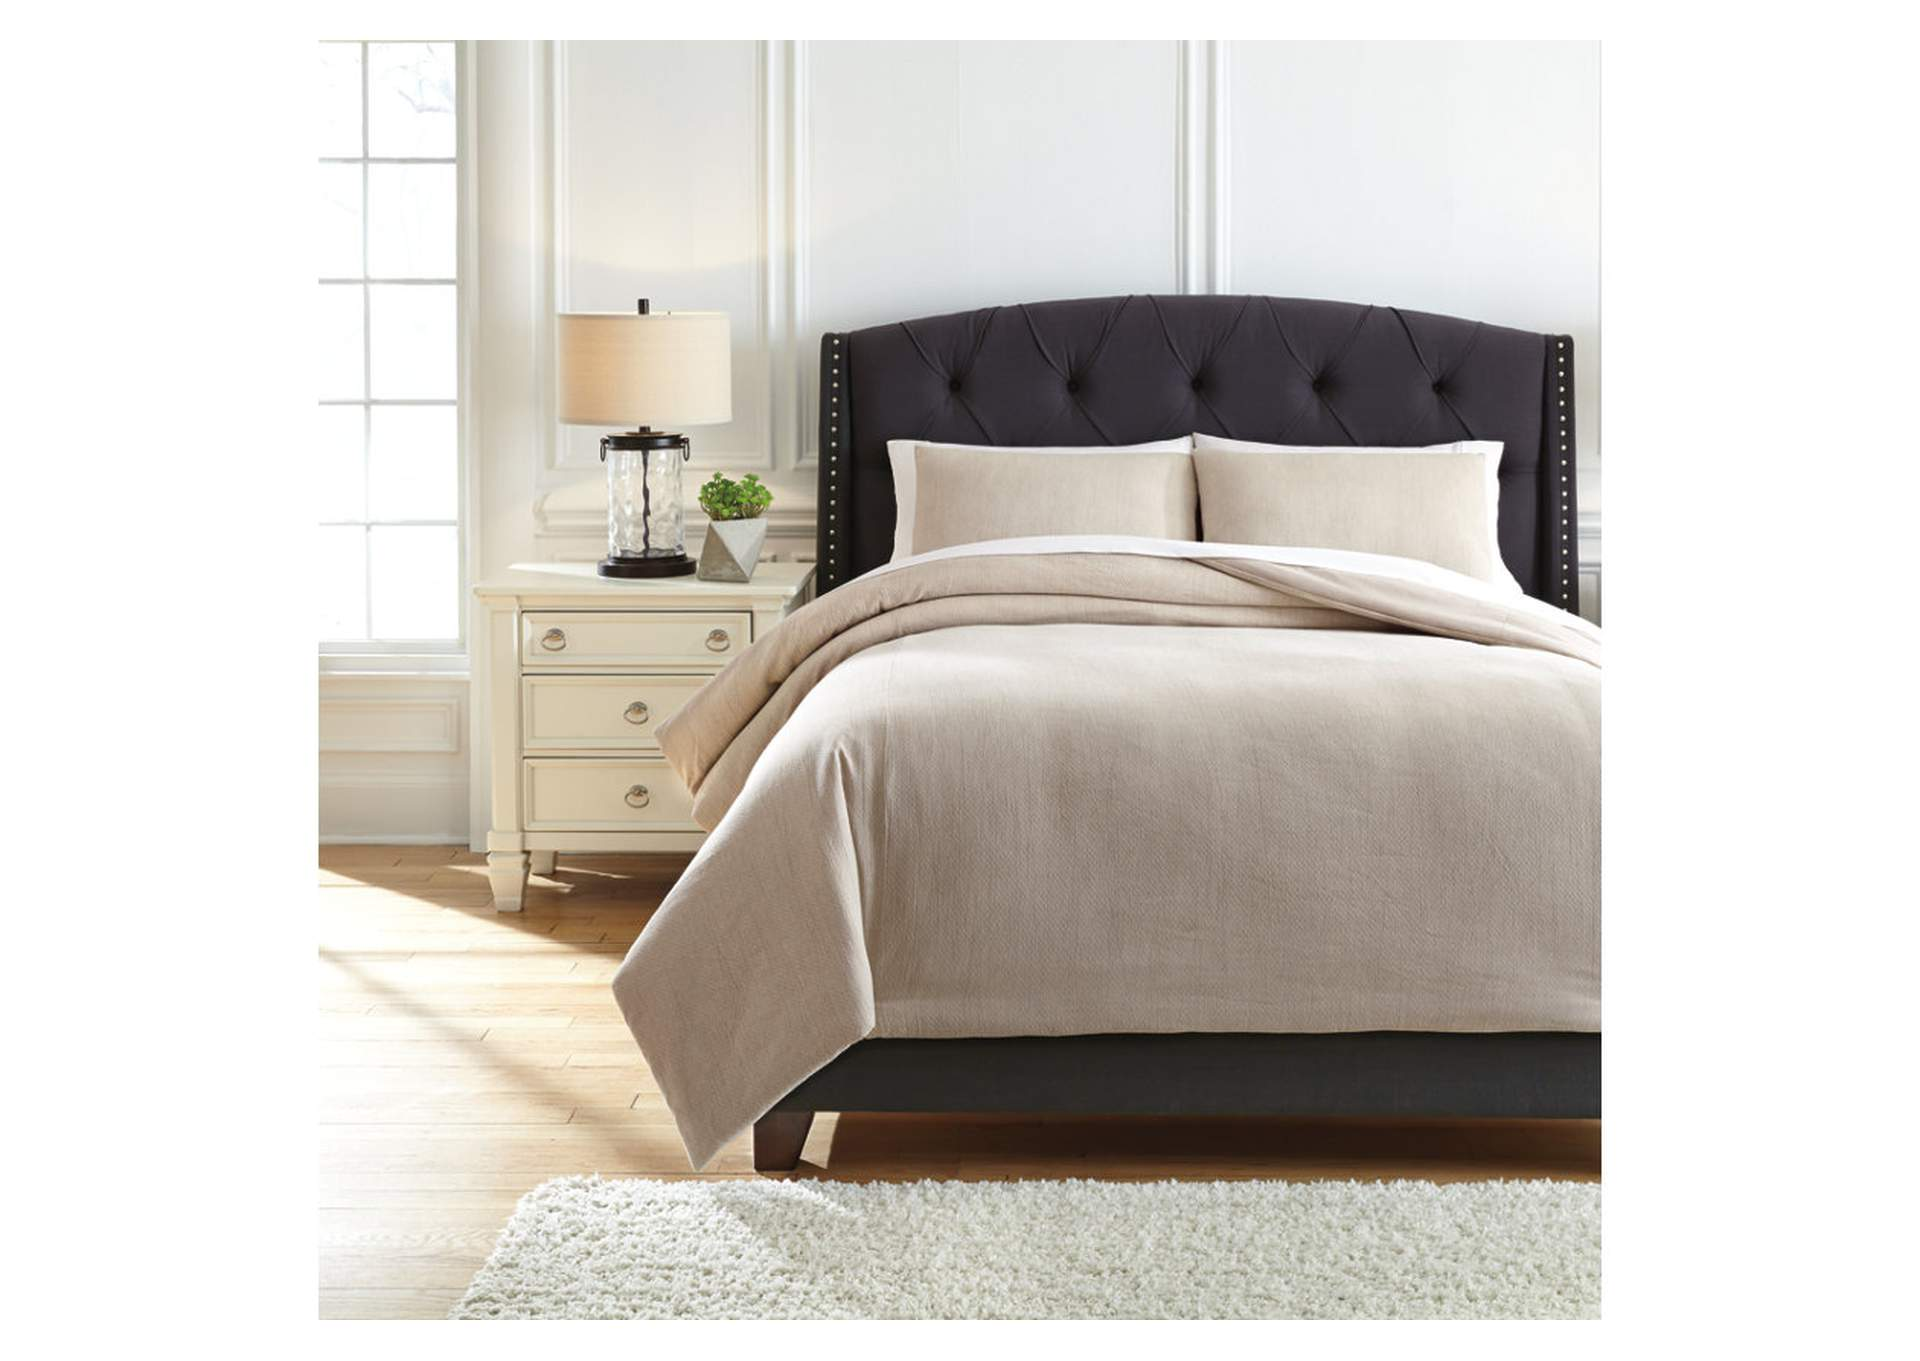 Mayda Beige King Comforter Set,Signature Design By Ashley